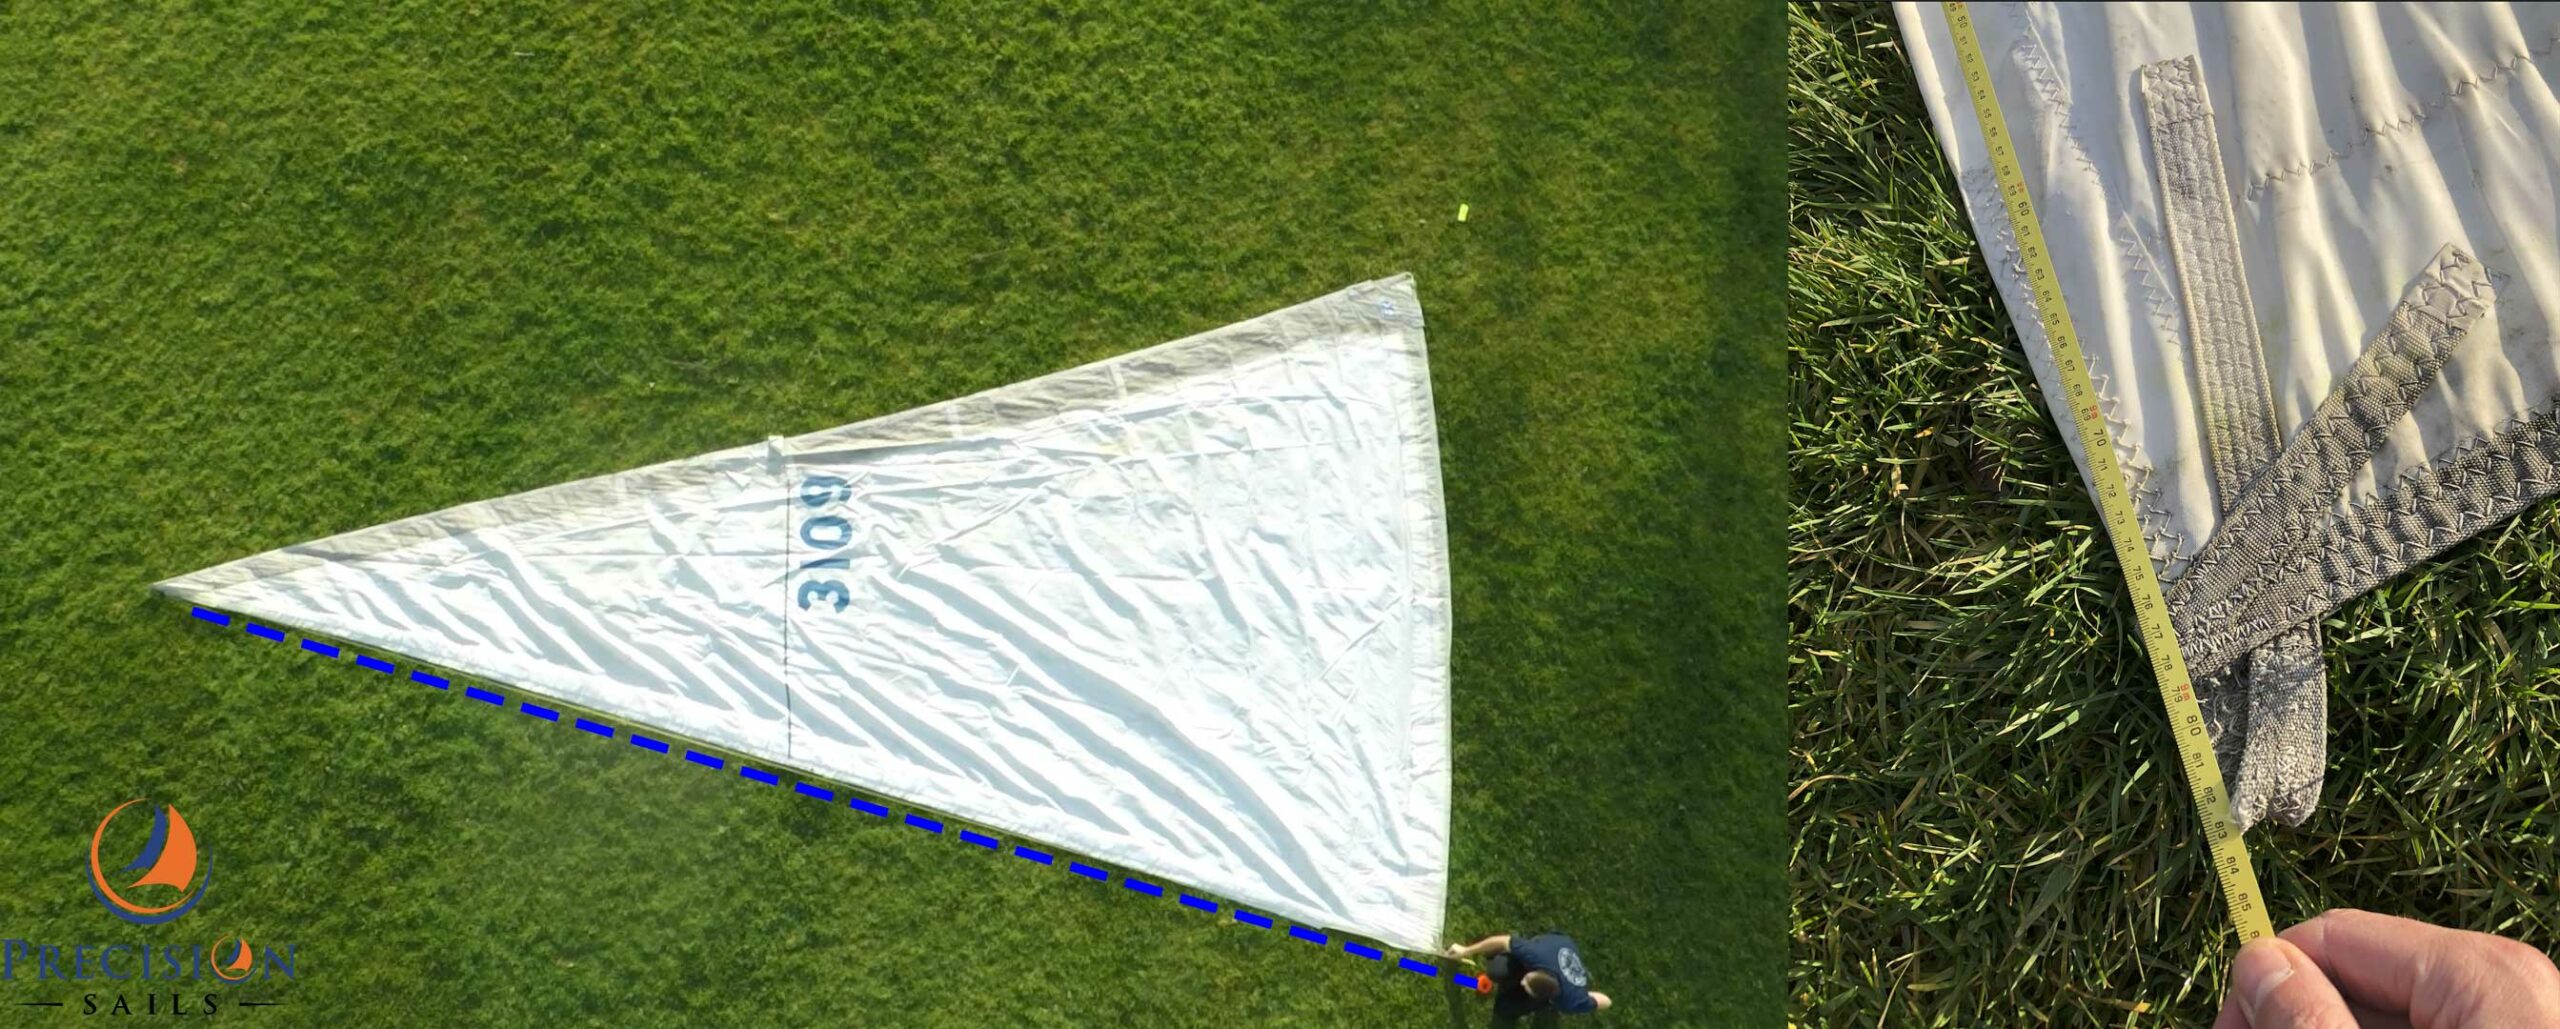 how to measure the maximum length of your headsails luff